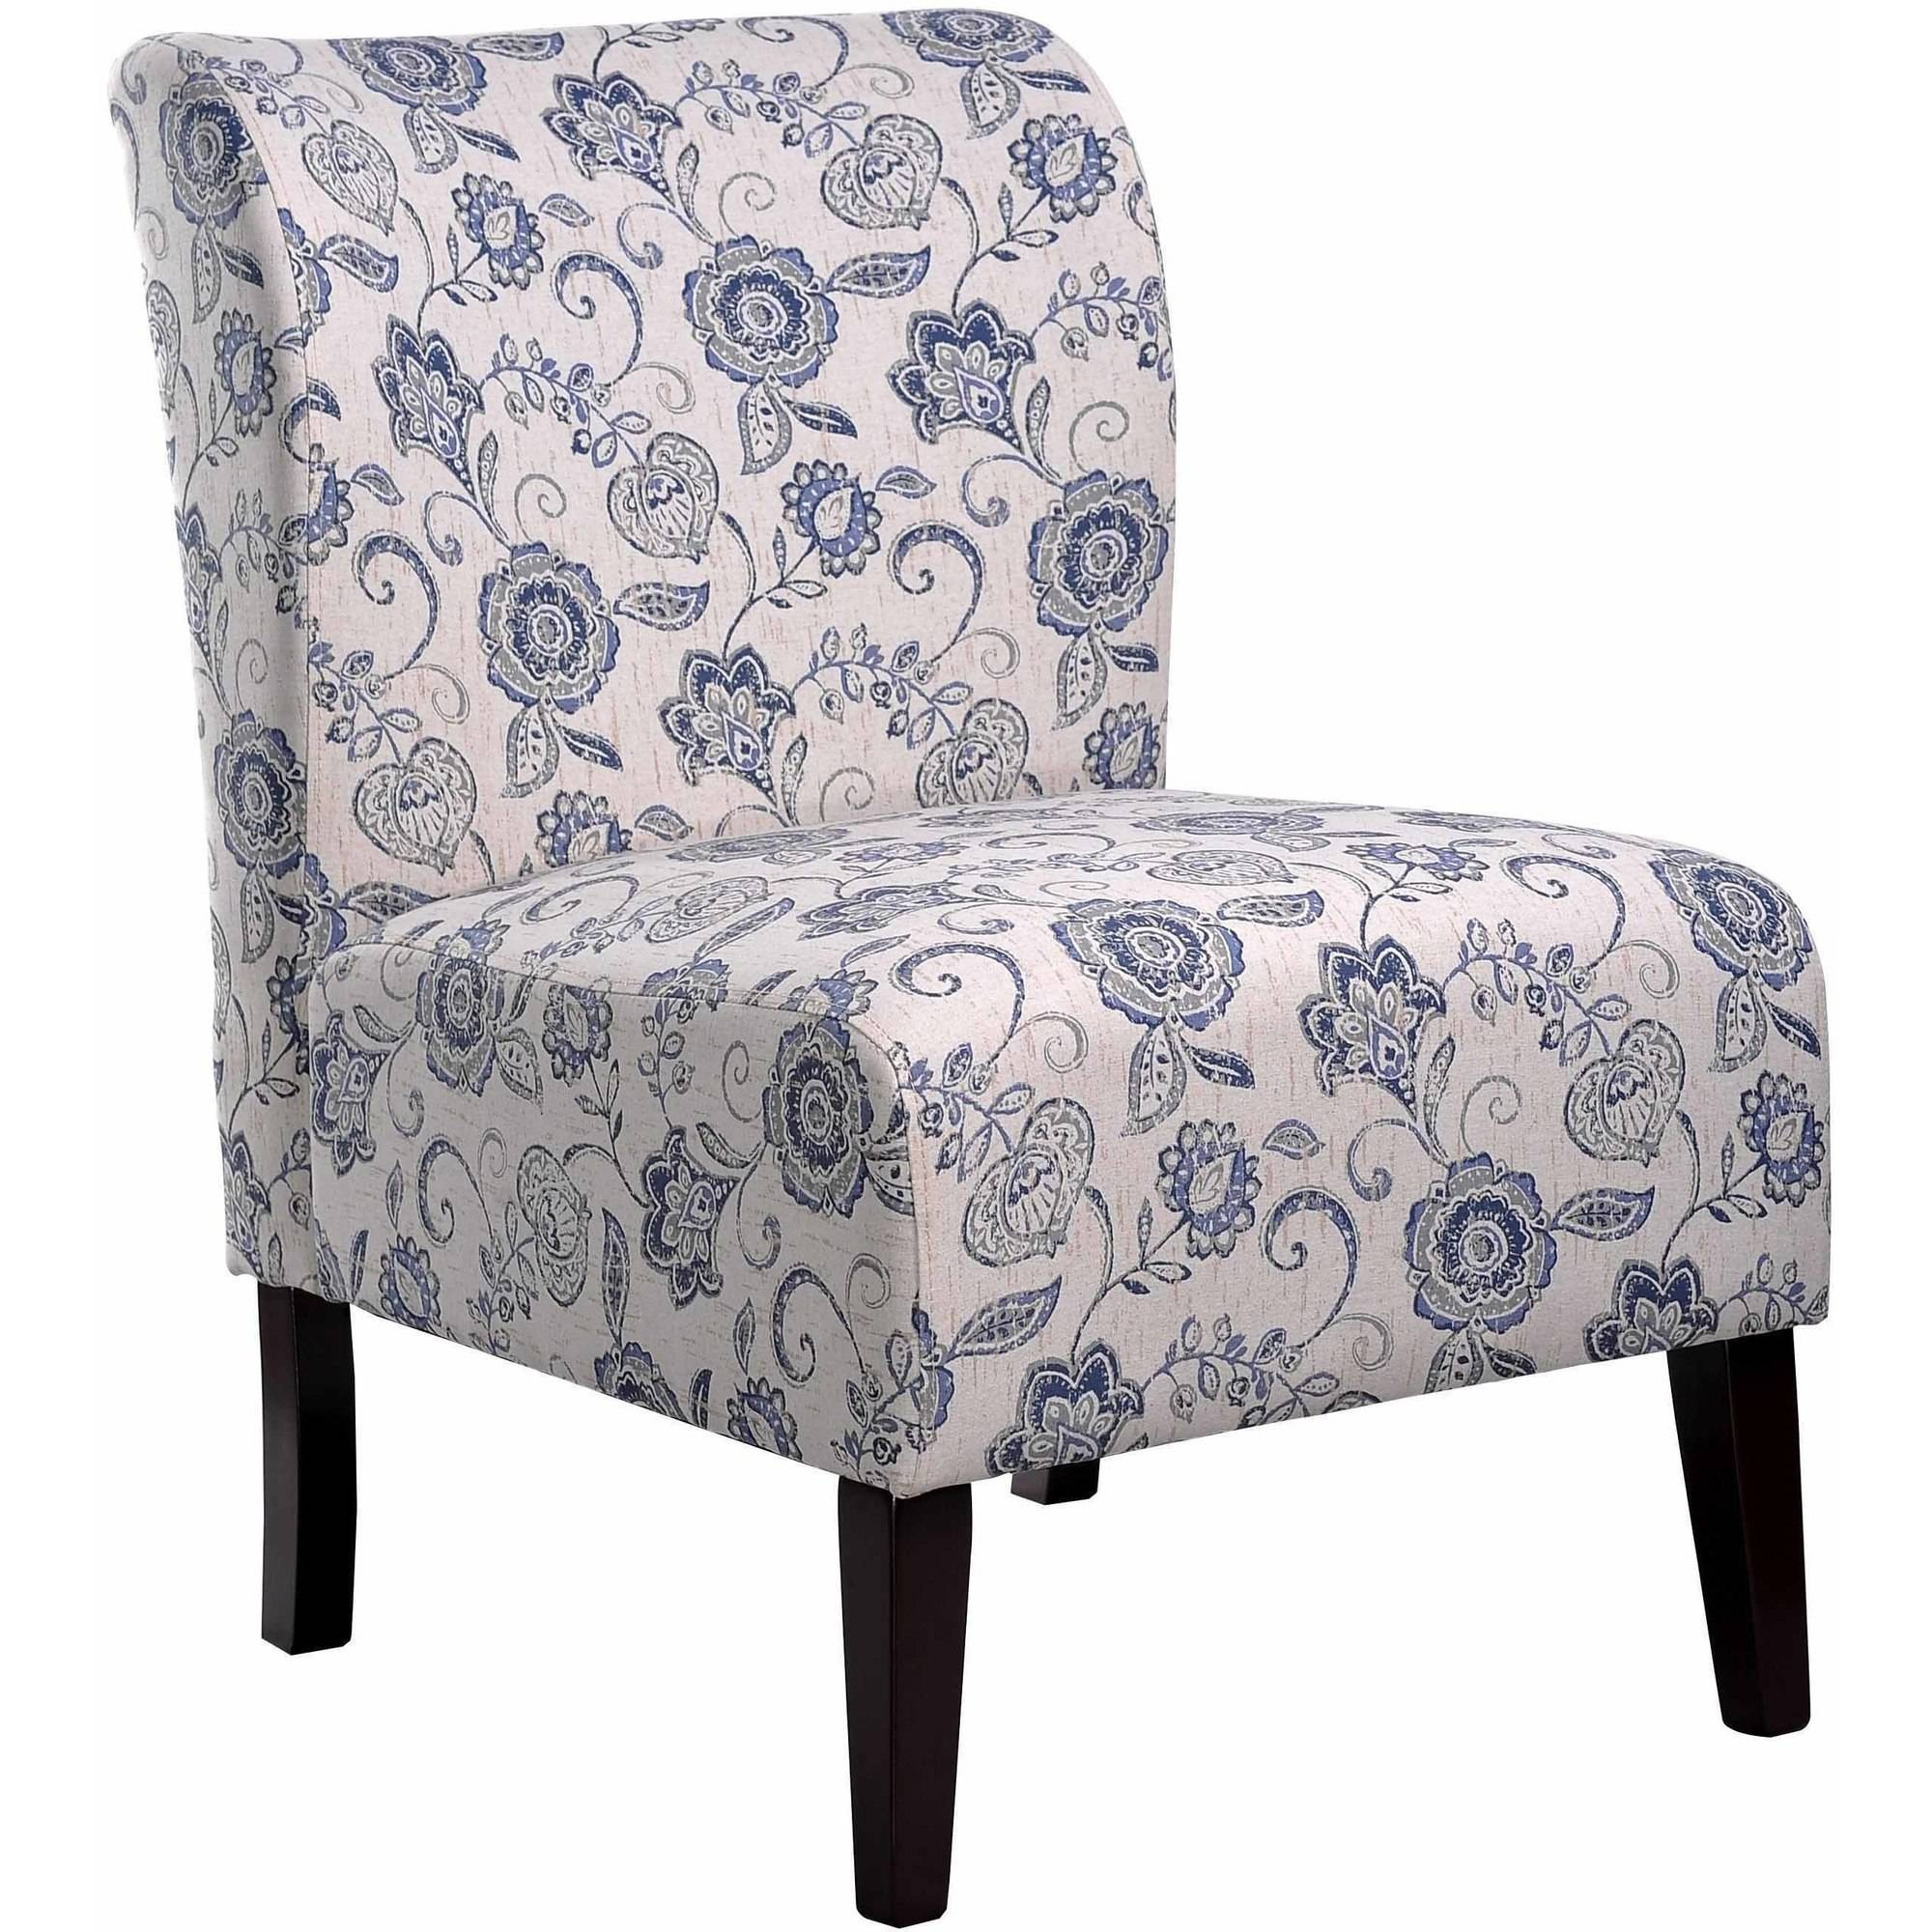 Nathaniel Home Khloe Flora Accent Chair, Multiple Colors